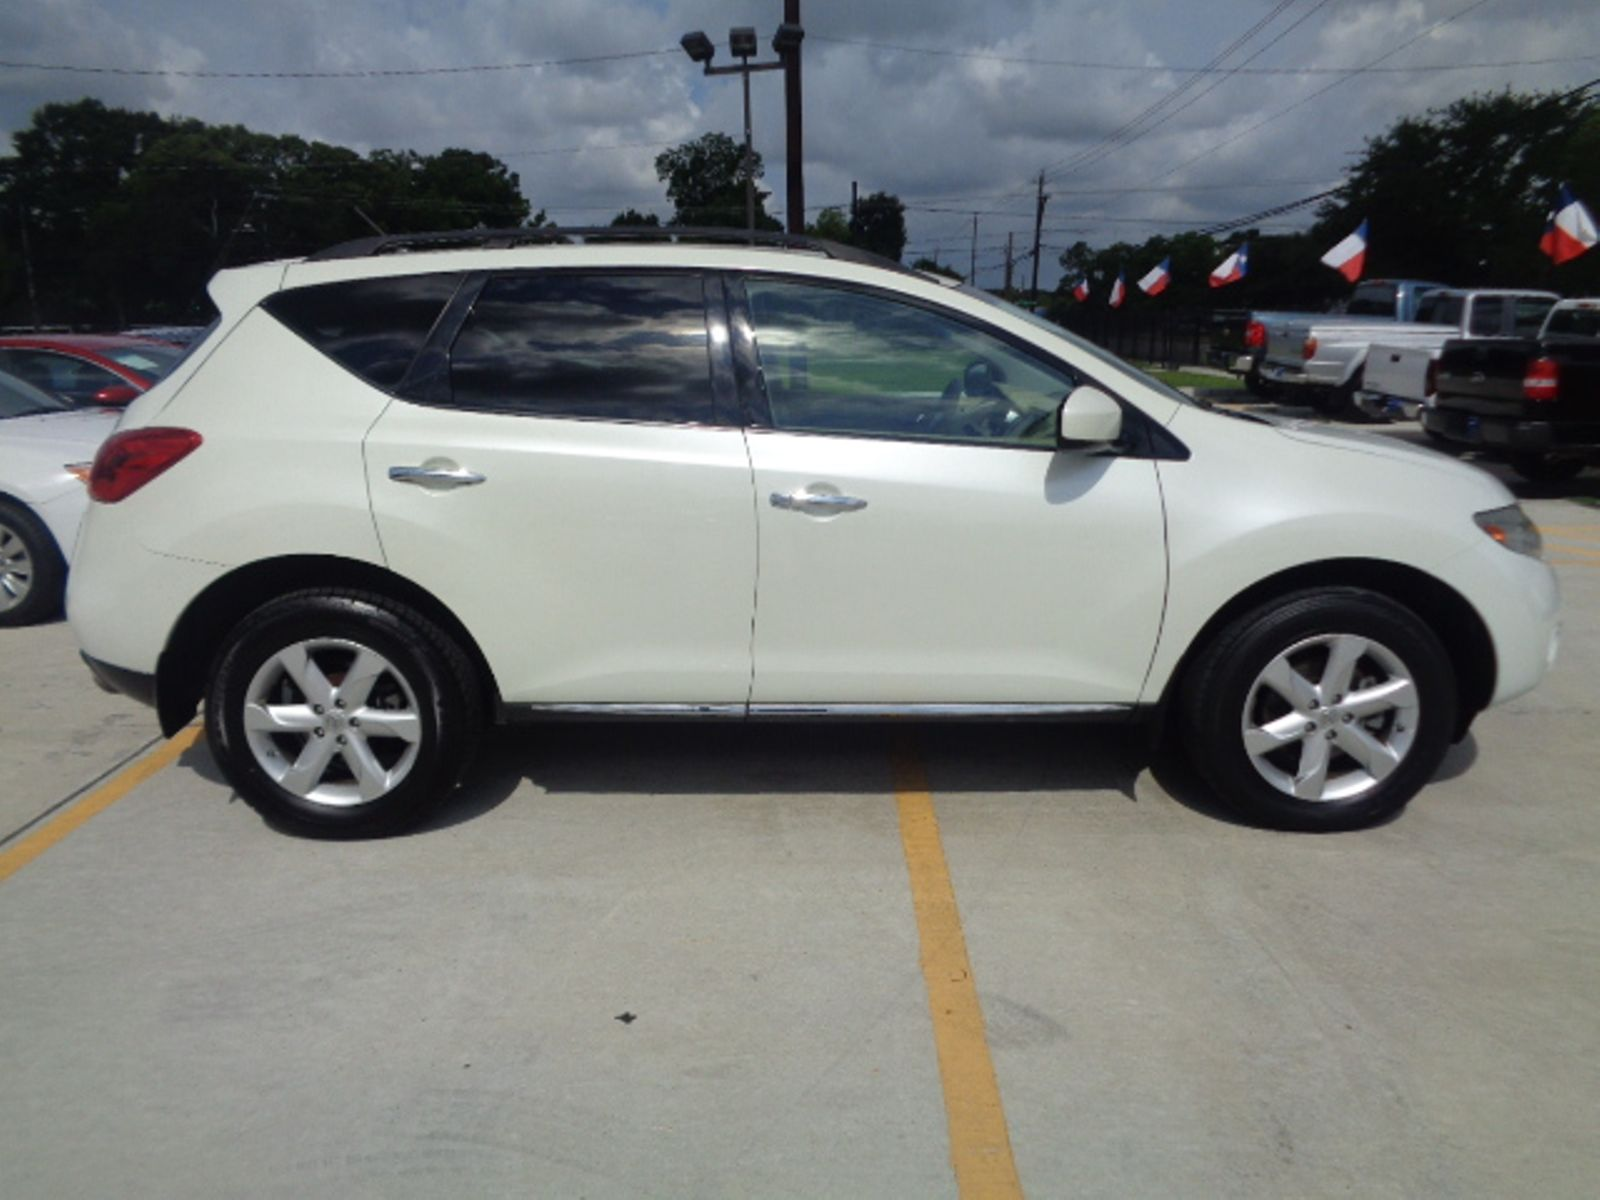 baker new com tx for used img houston listing dealers nissan sale cars at in auto